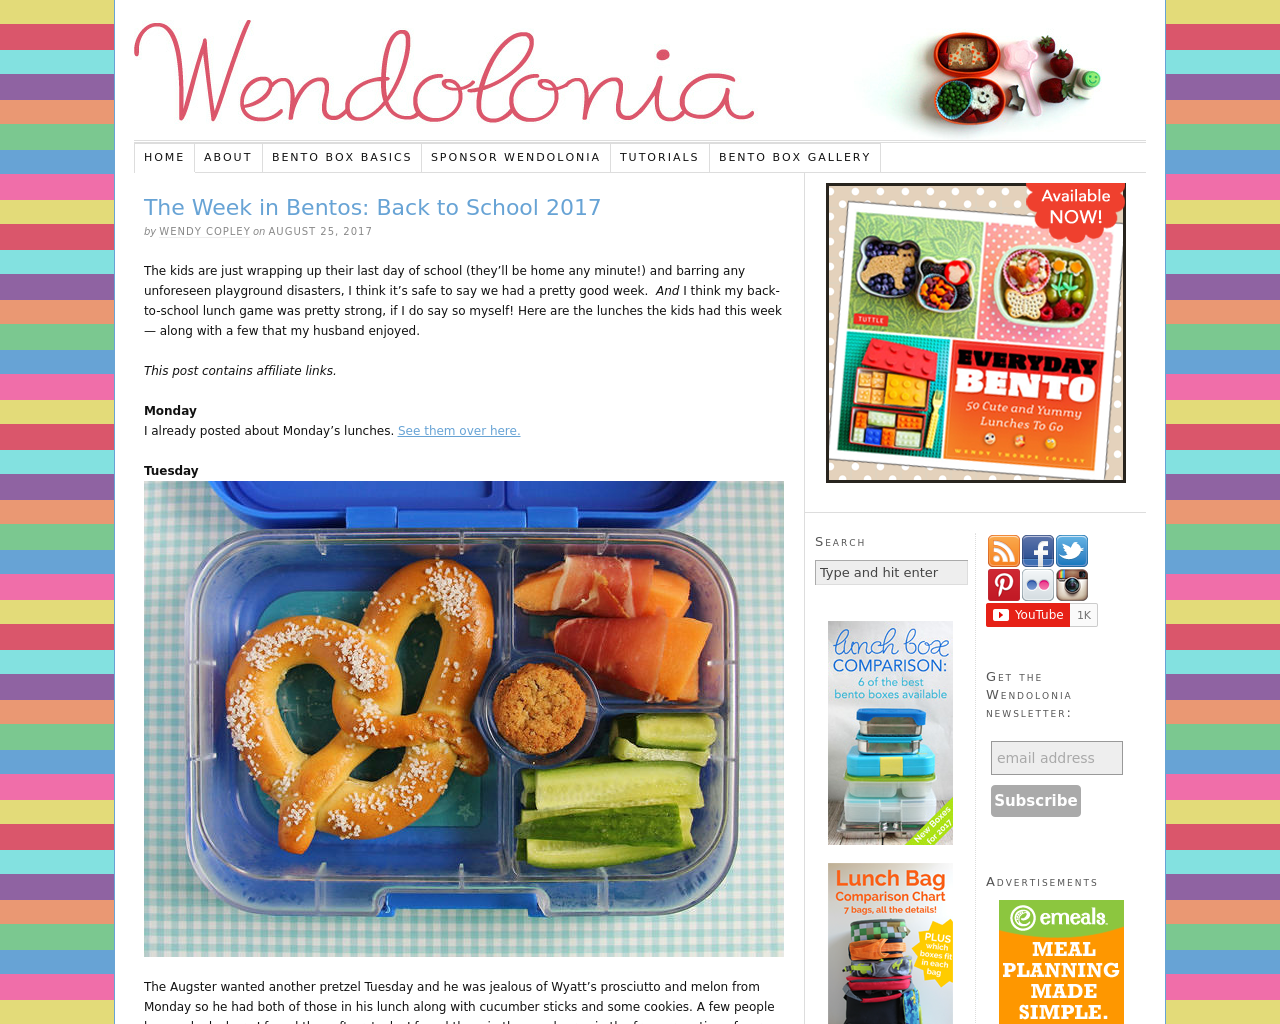 Wendolonia-Advertising-Reviews-Pricing